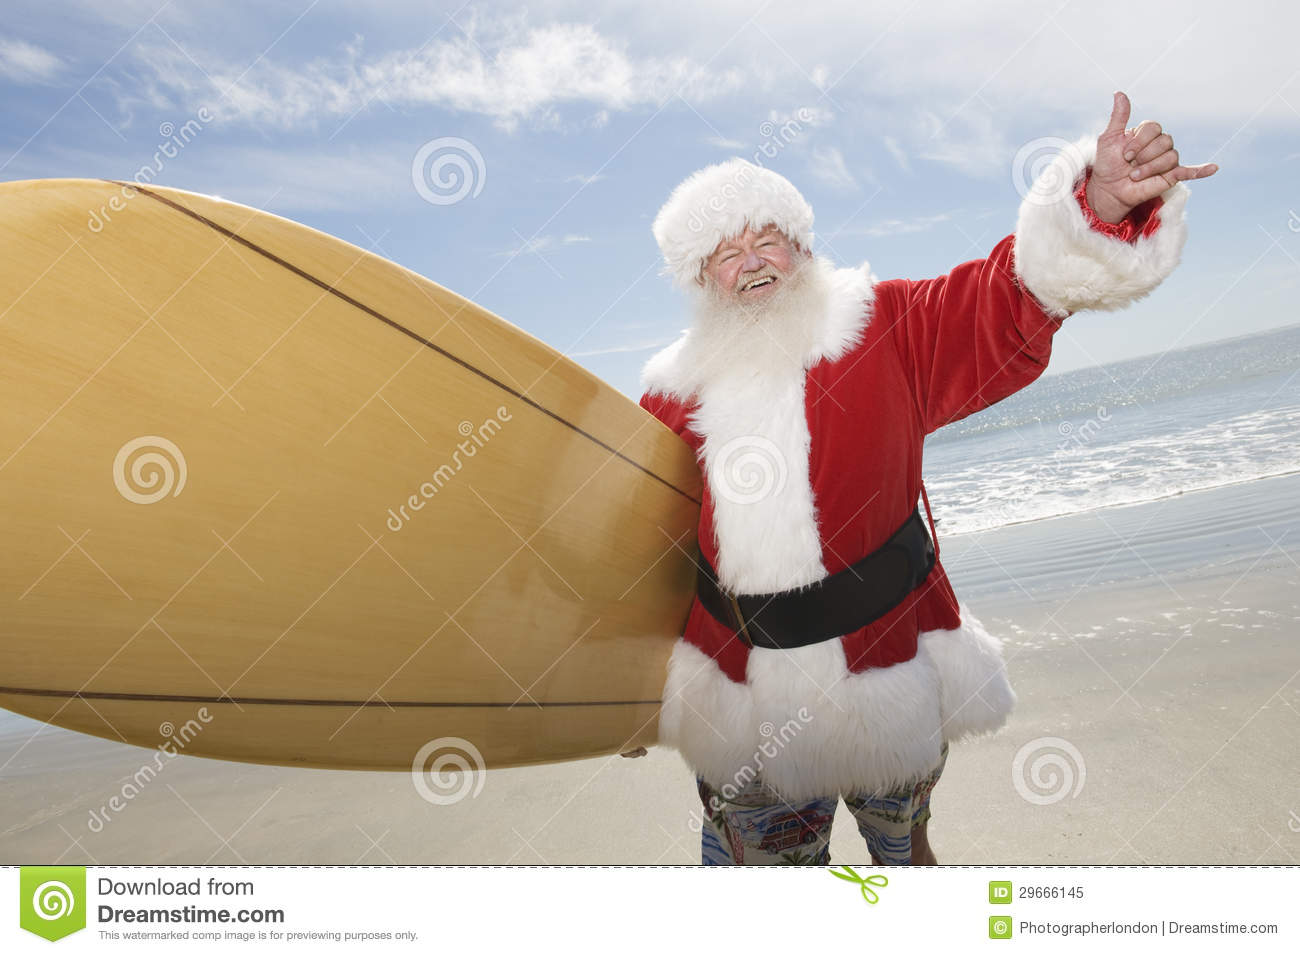 Santa Claus With Surf Board On-Strand